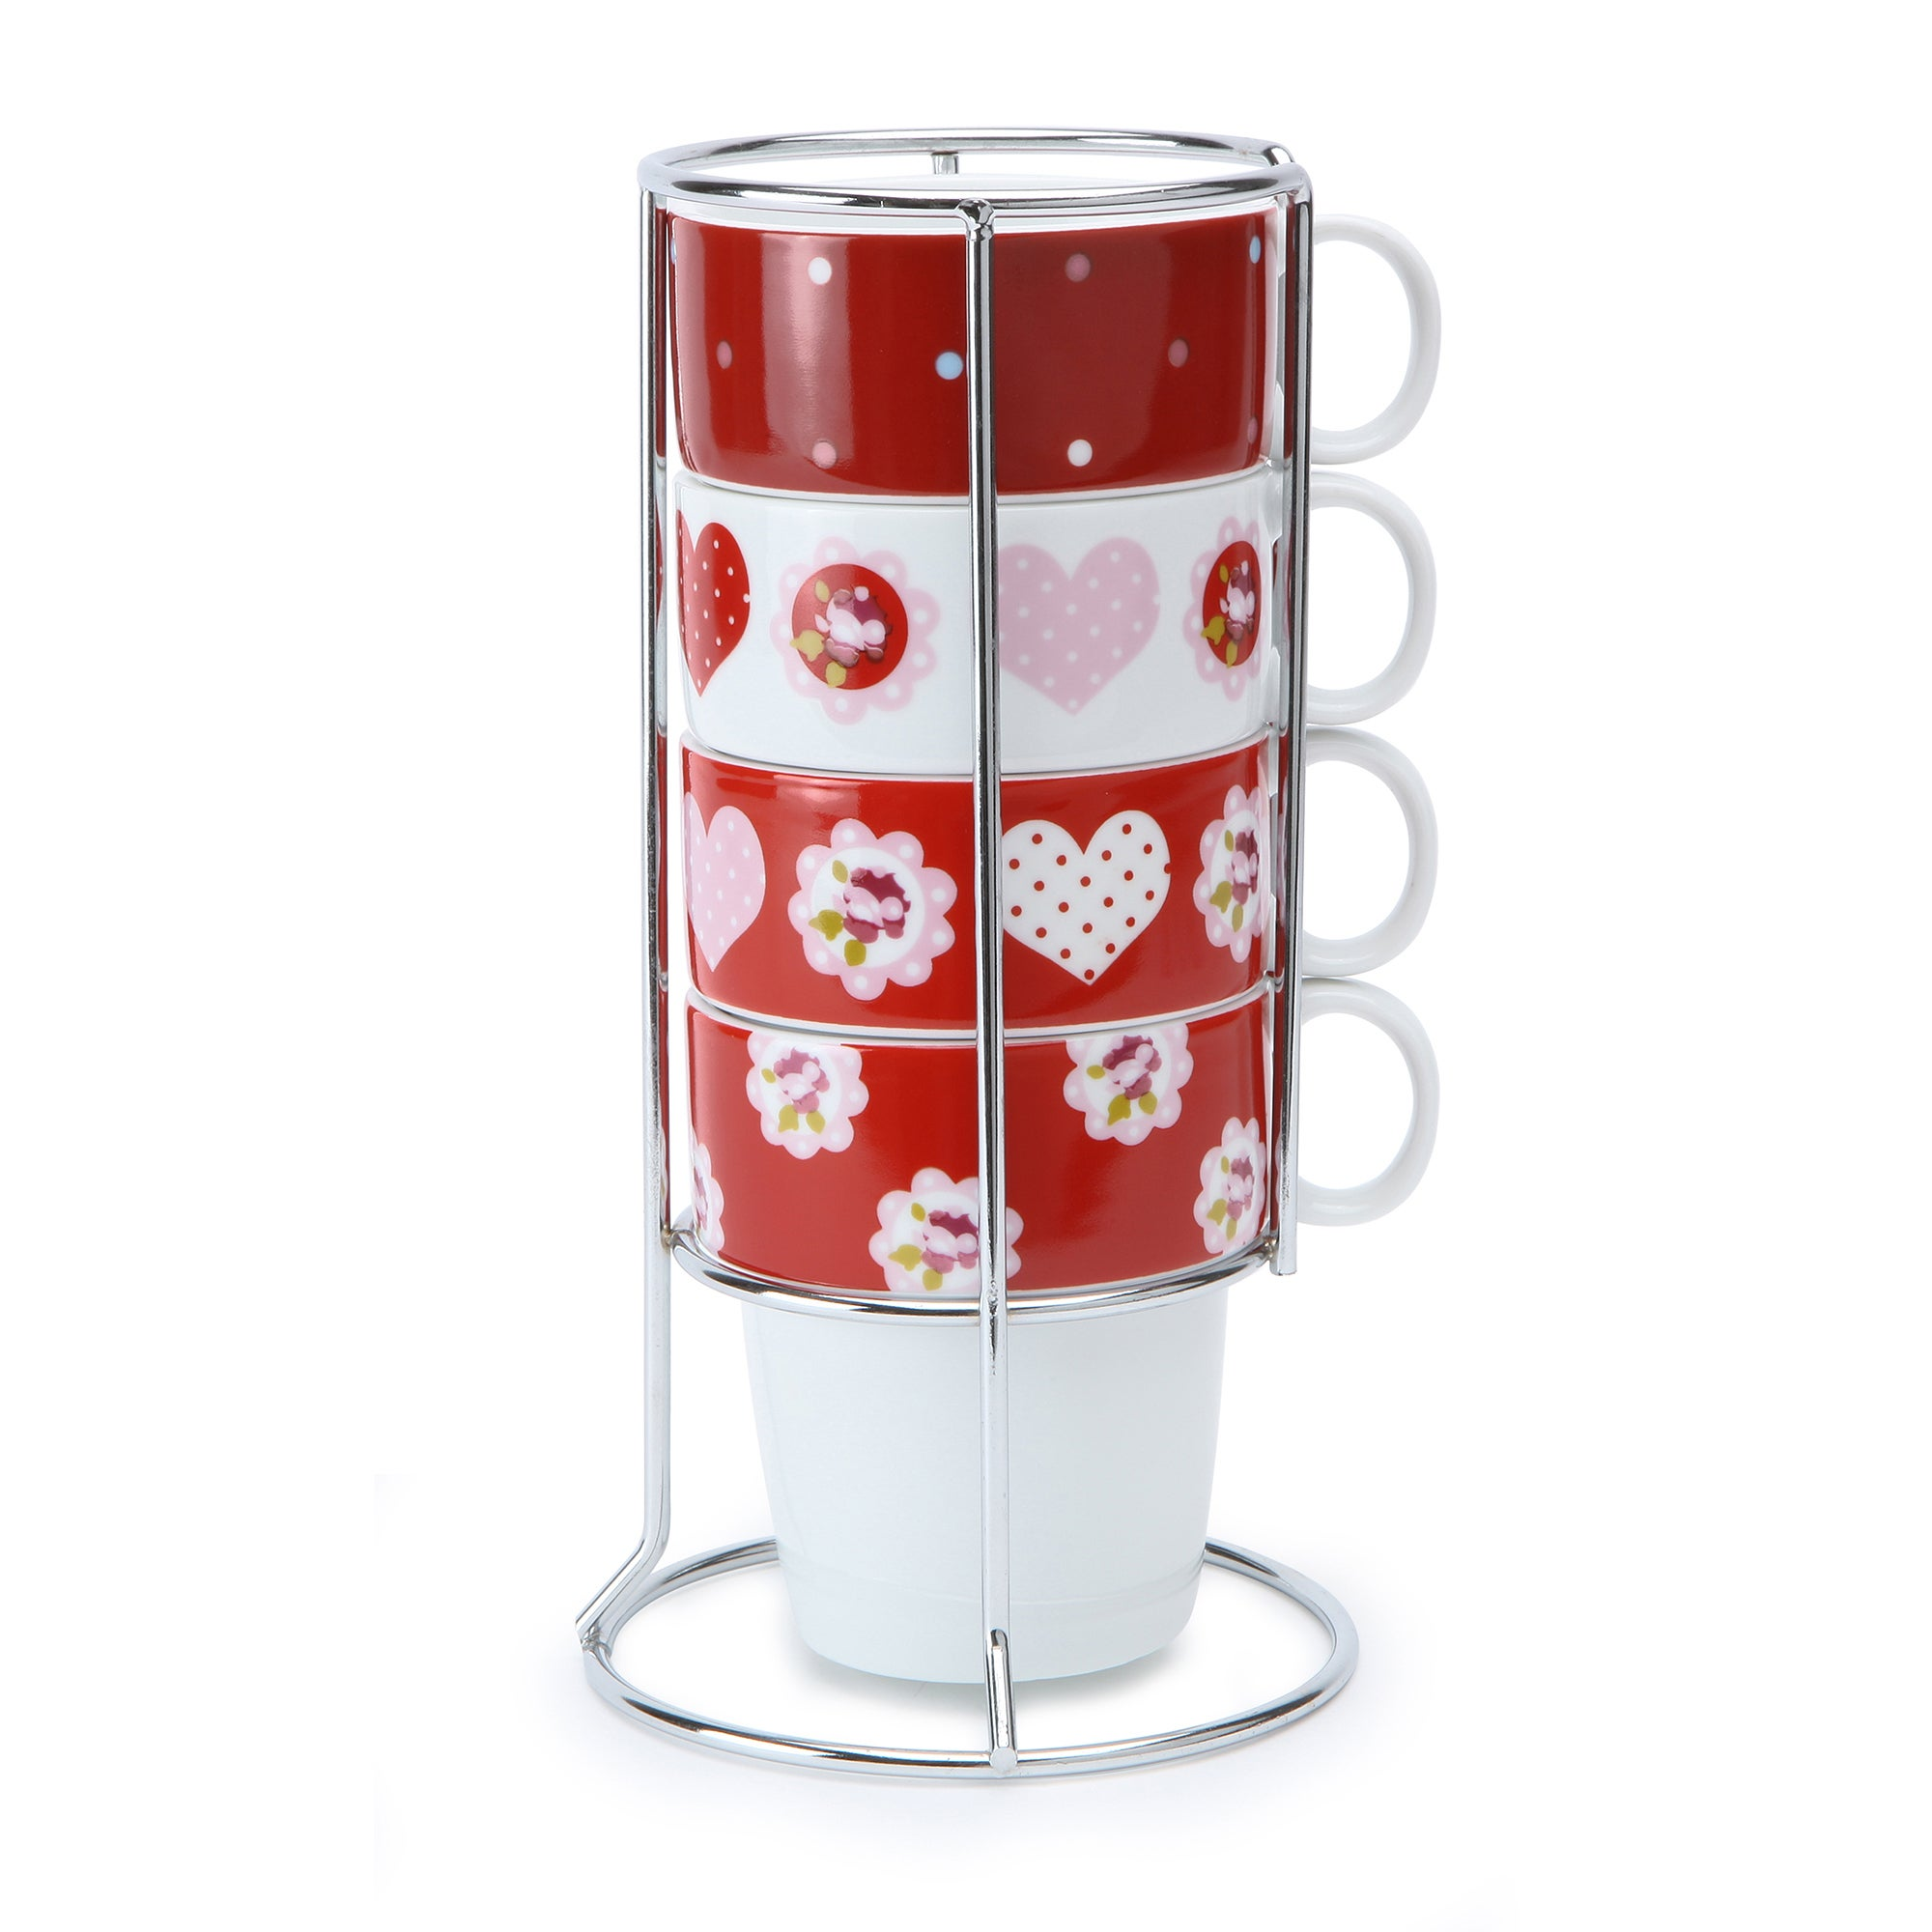 Rose and Ellis Allexton Collection Stacking Mugs